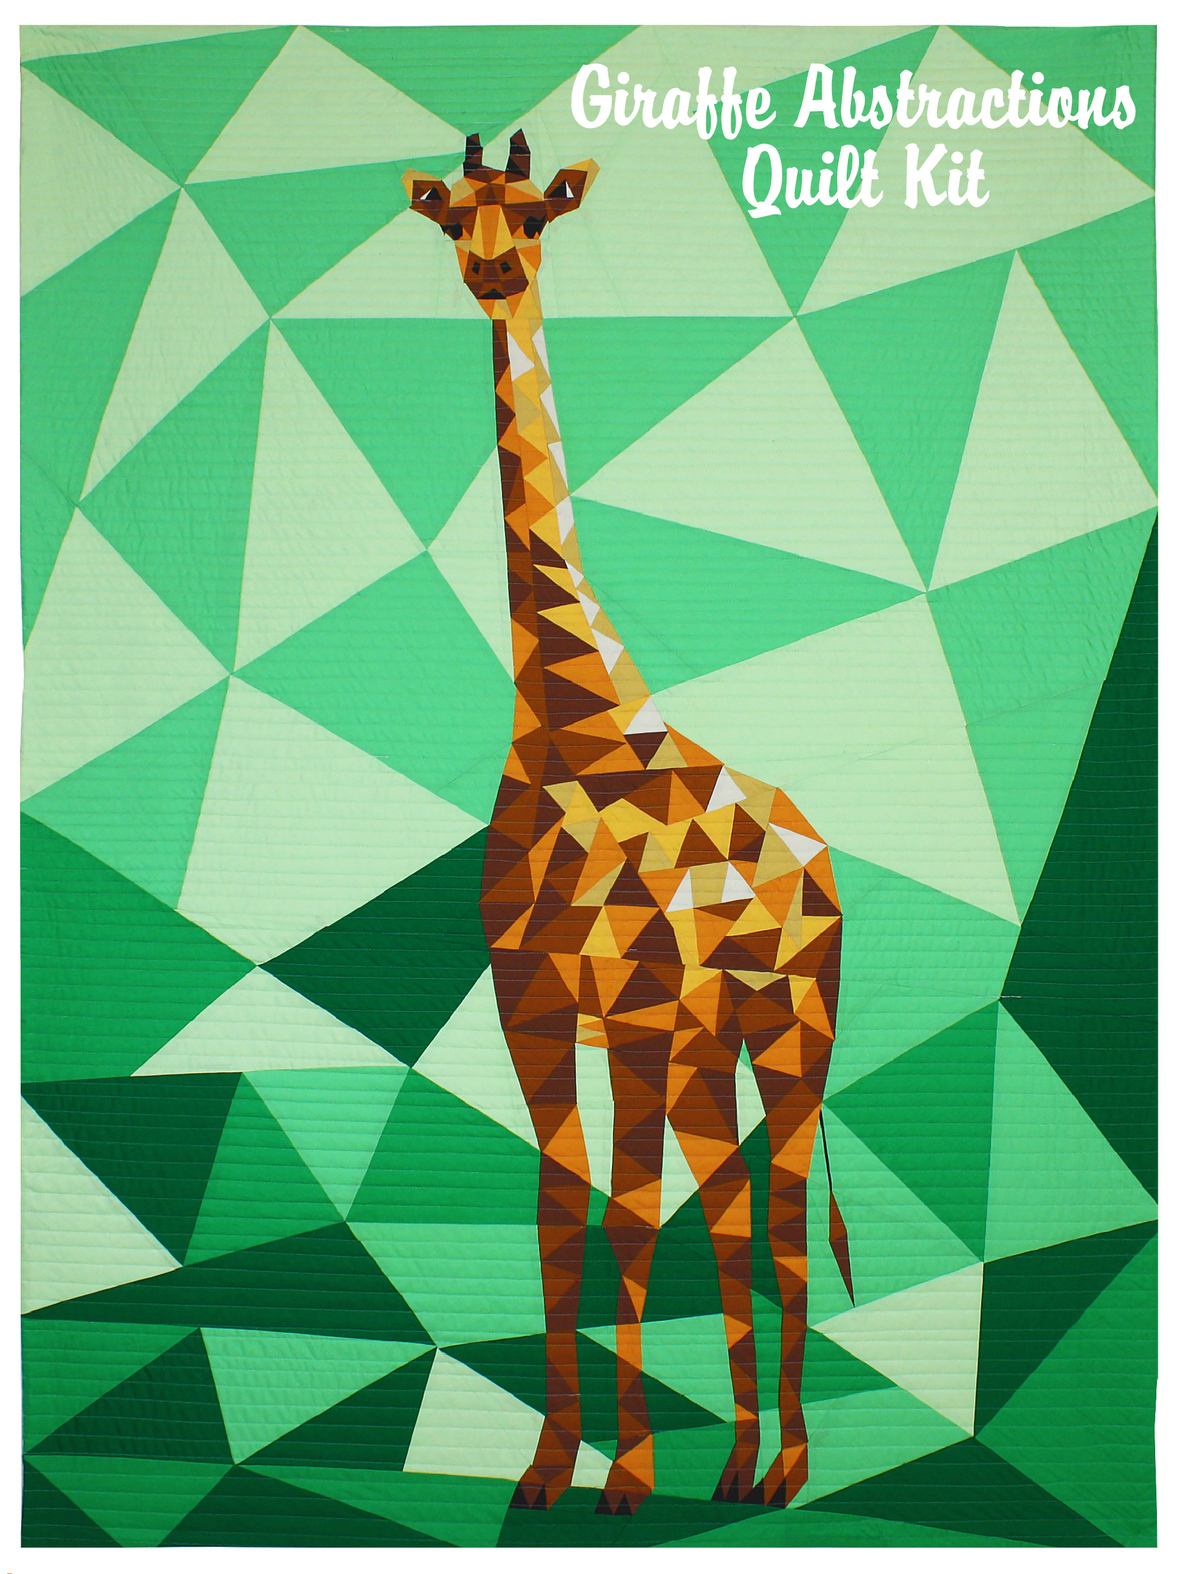 violet craft giraffe abstractions quilt kit sewing pattern